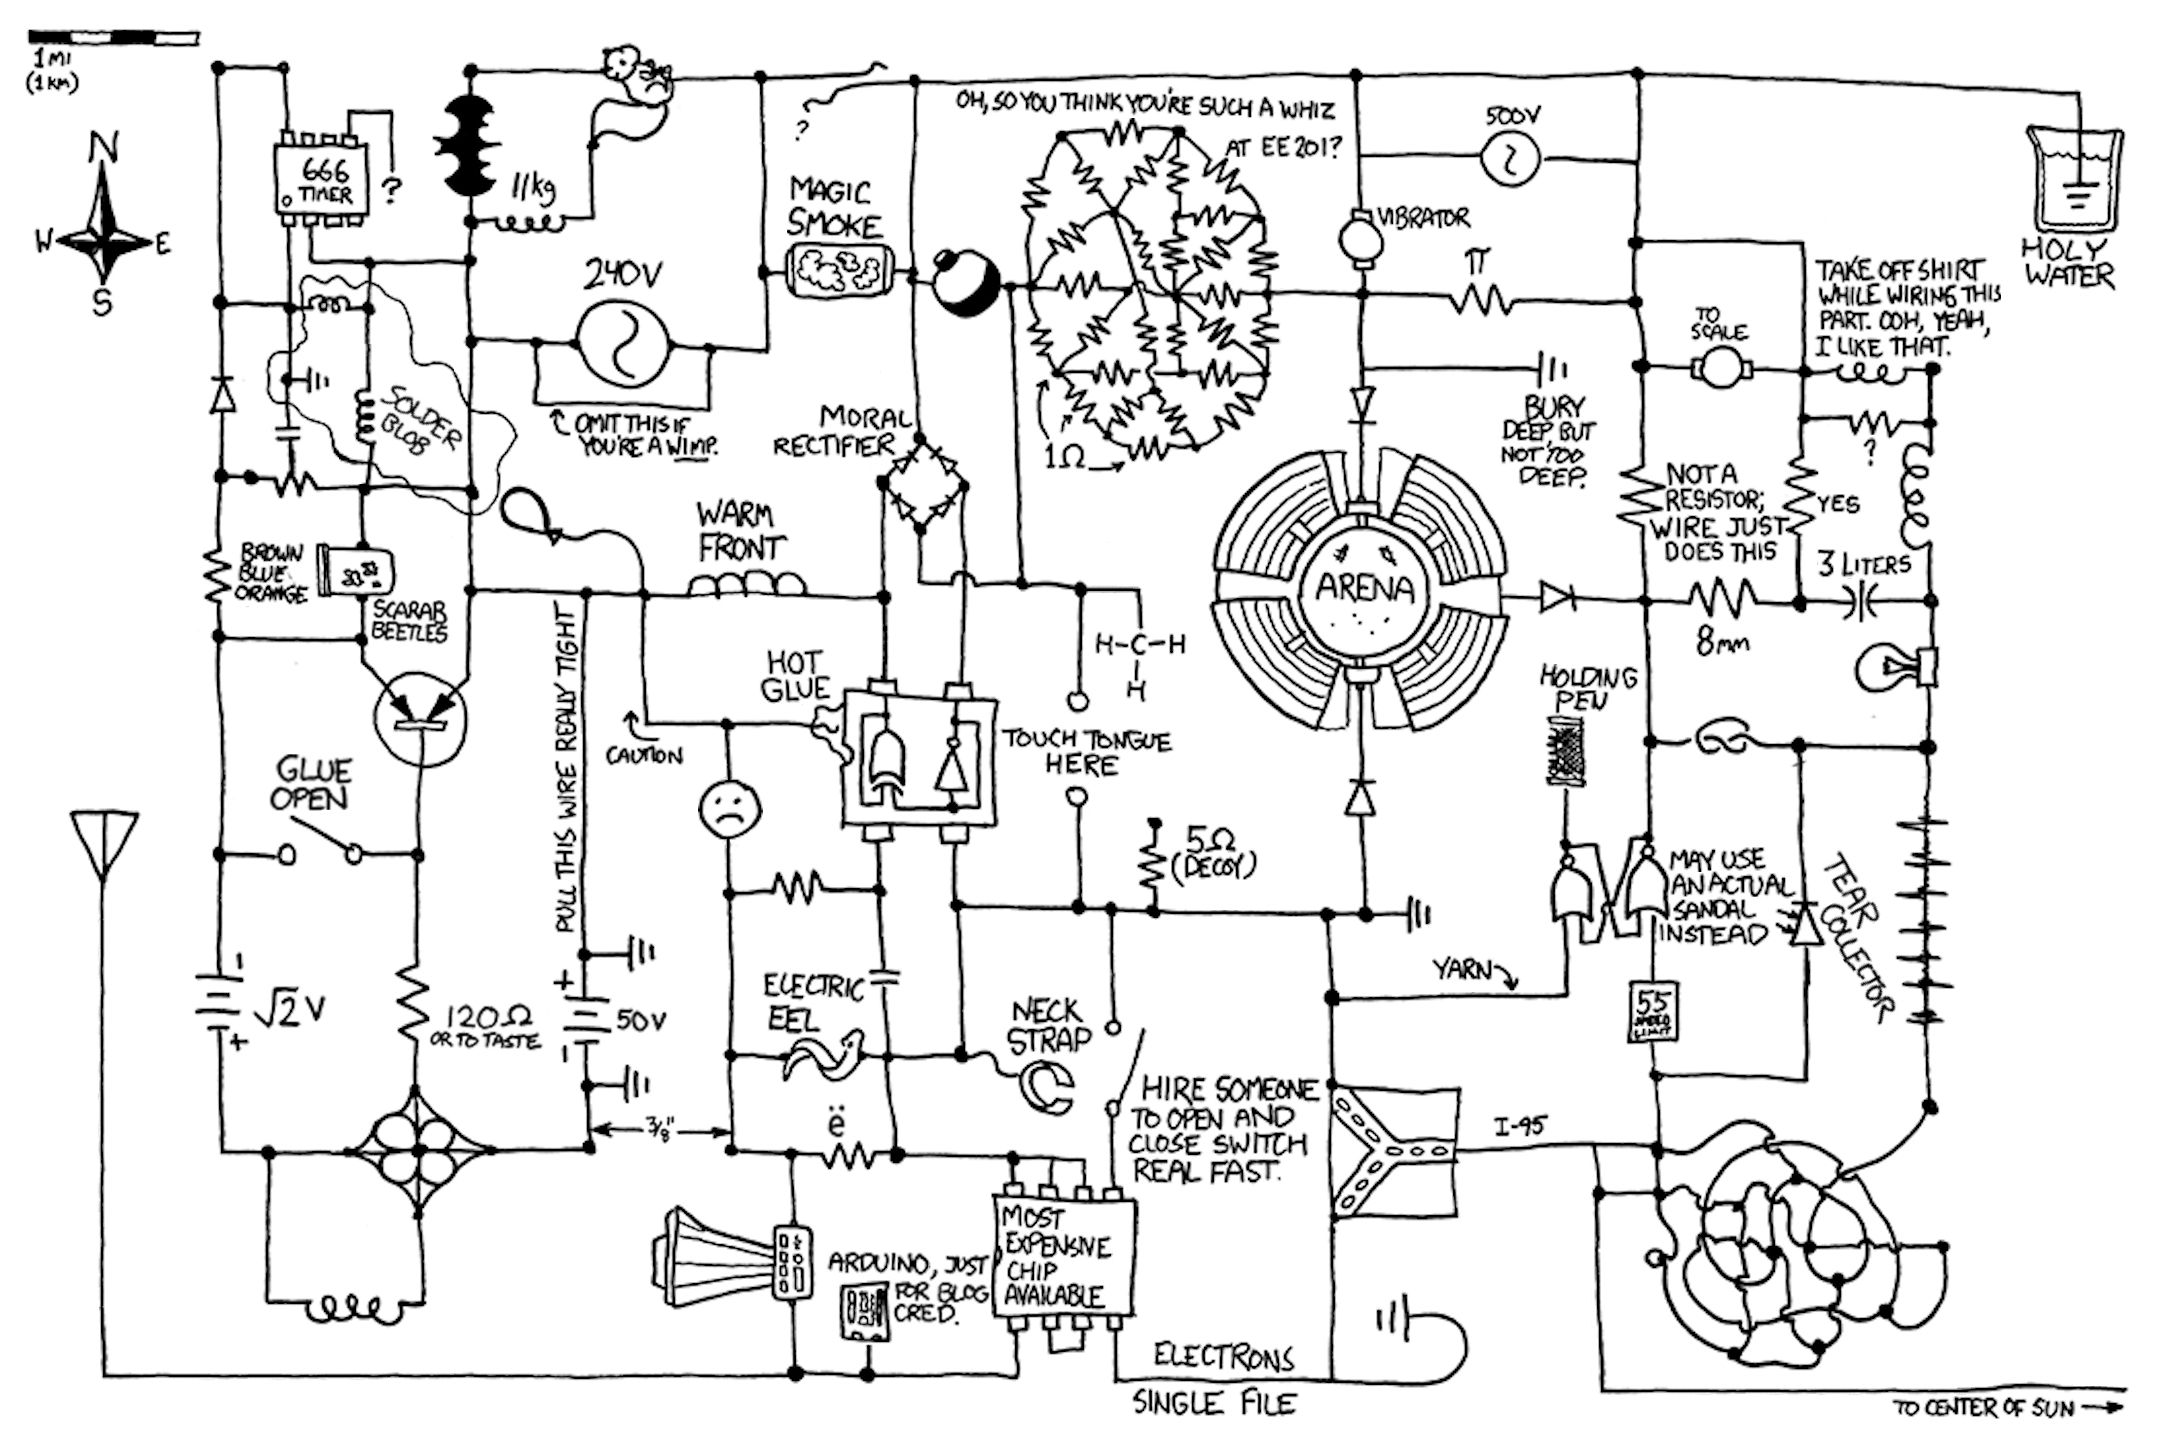 i rotated all of the text in circuit diagram xkcd 730 so it can be wiring diagram xjcd online [ 2160 x 1440 Pixel ]